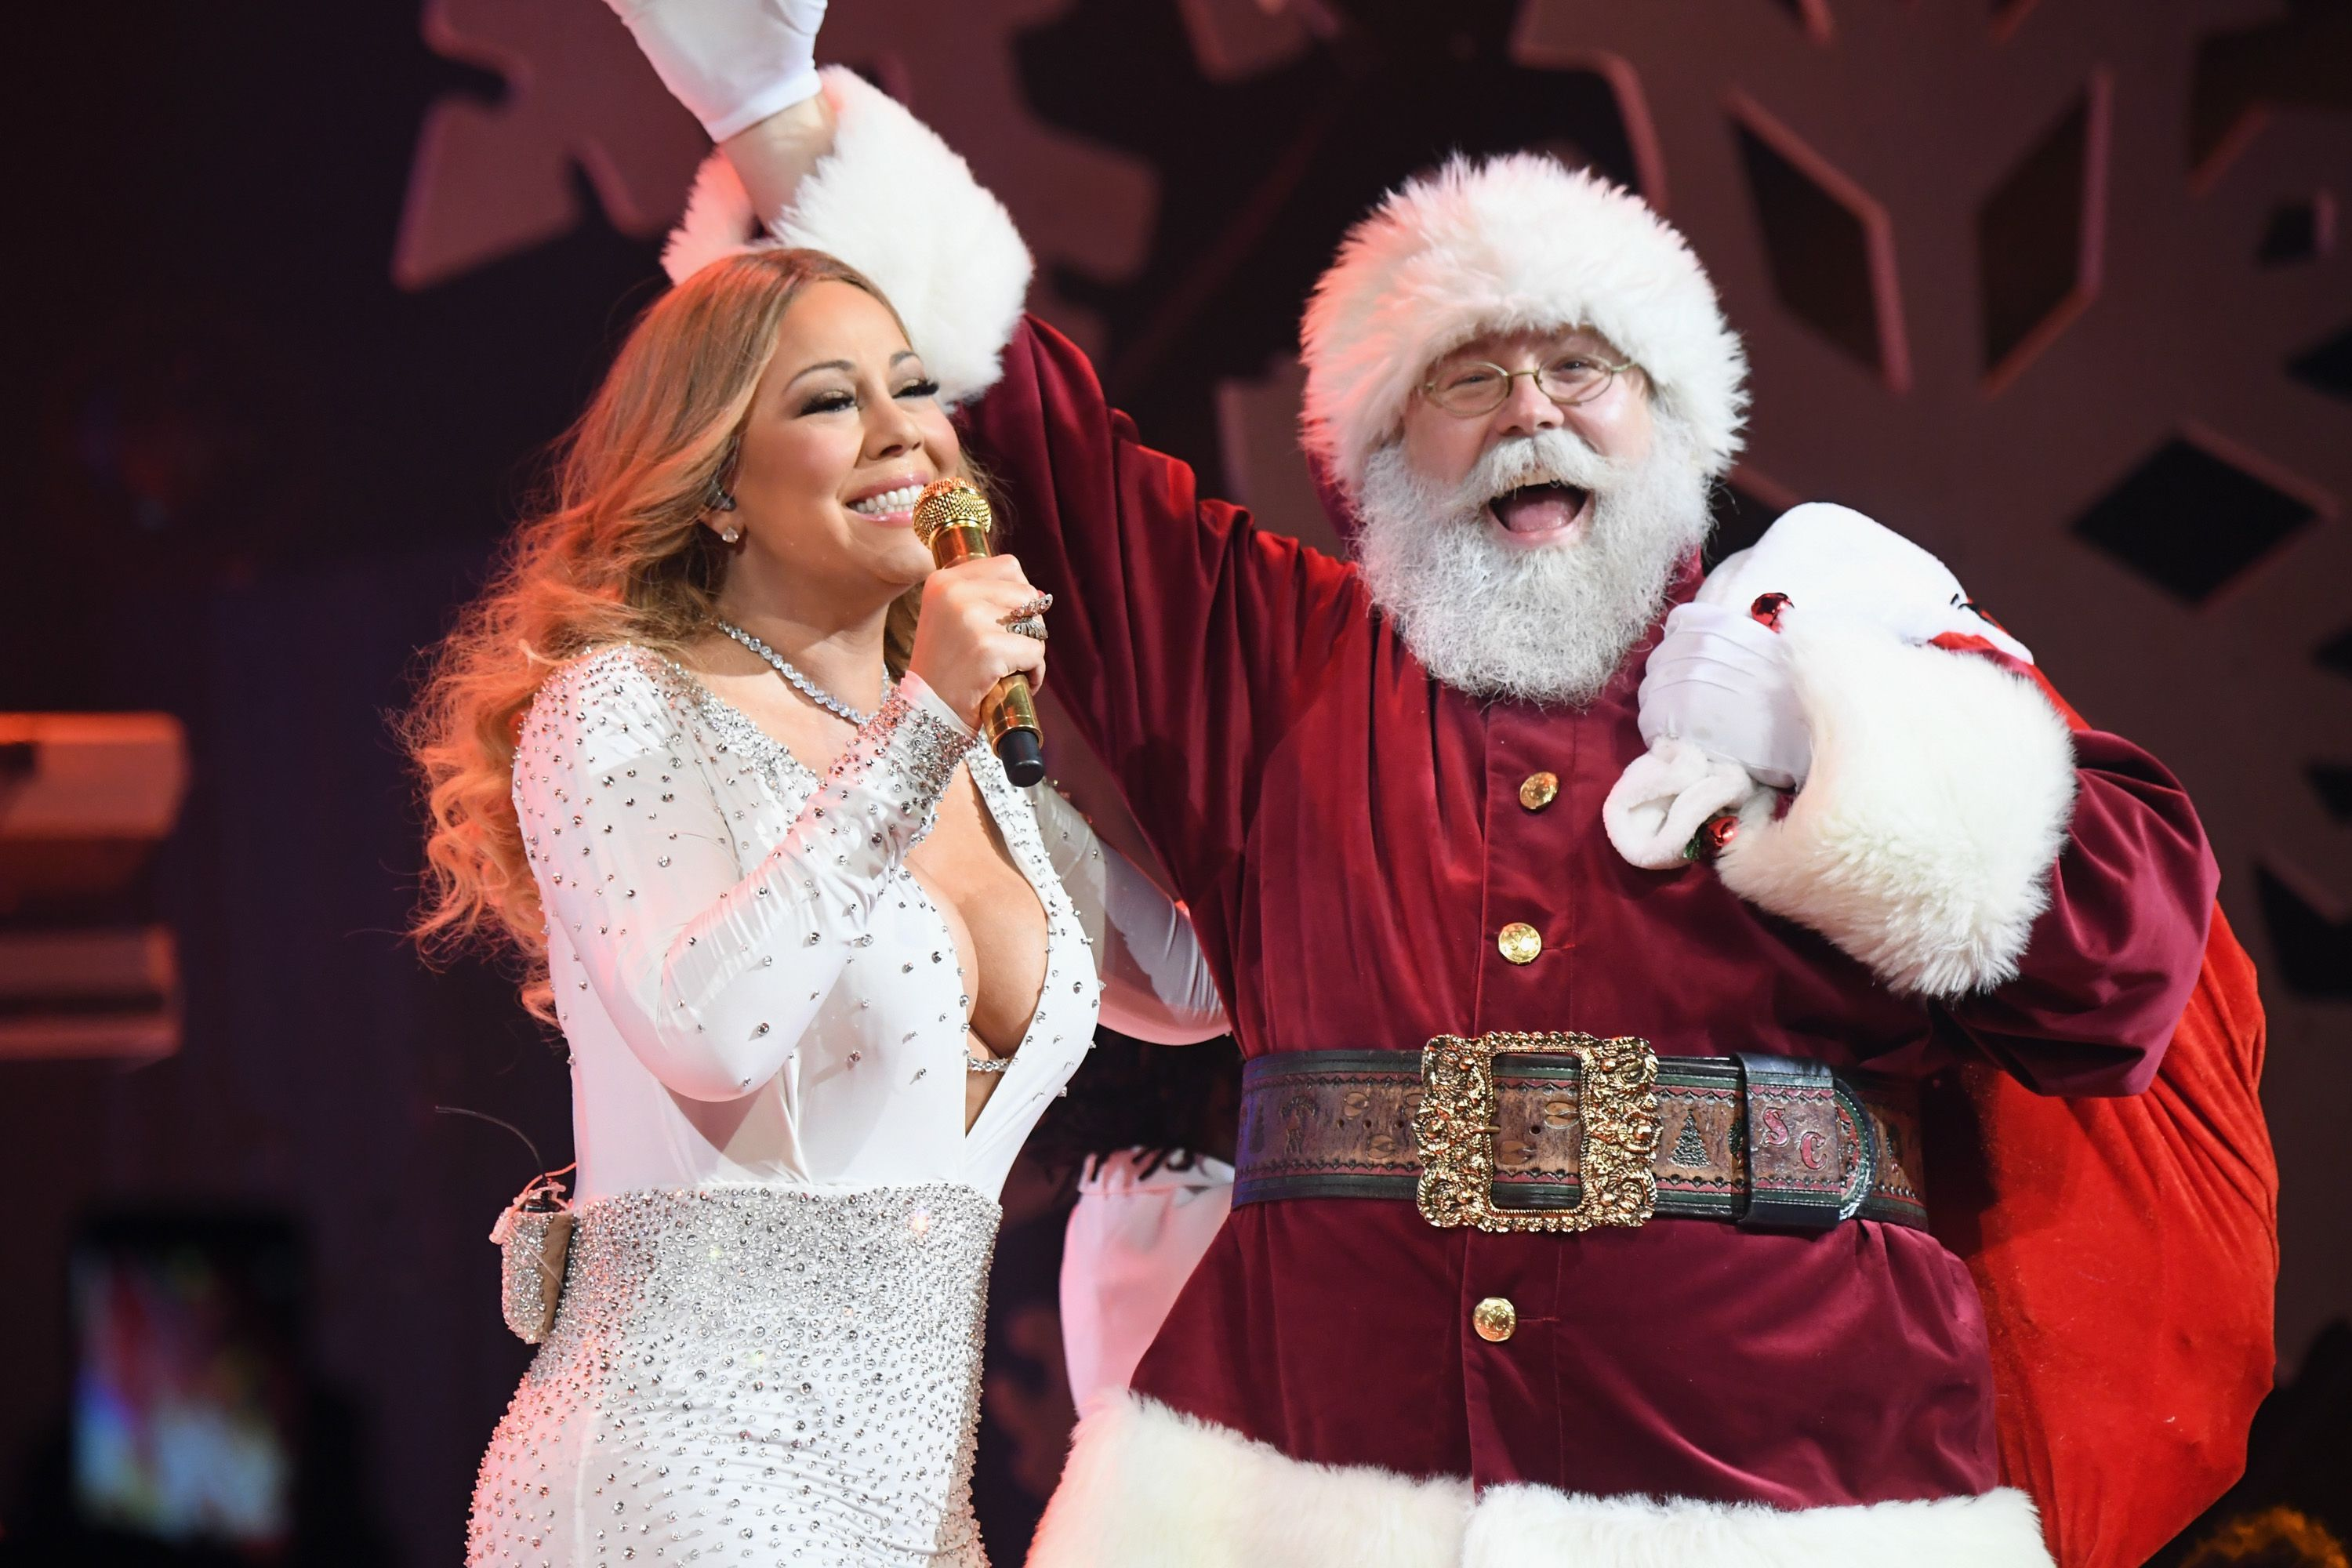 The 21 Best Christmas Songs Ultimate Holiday Party Playlist